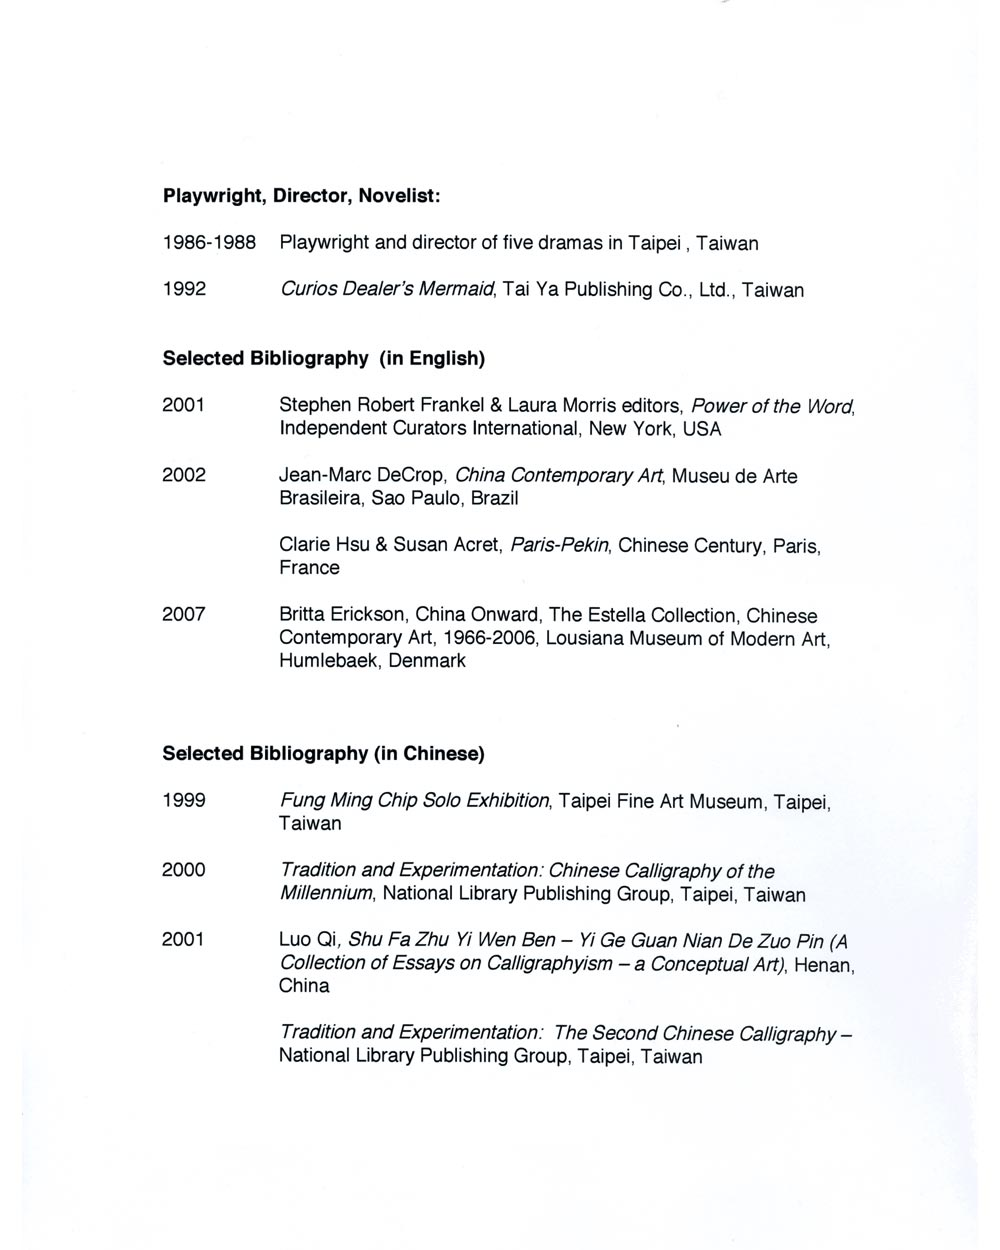 Ming Chip Fung's Resume, pg 5